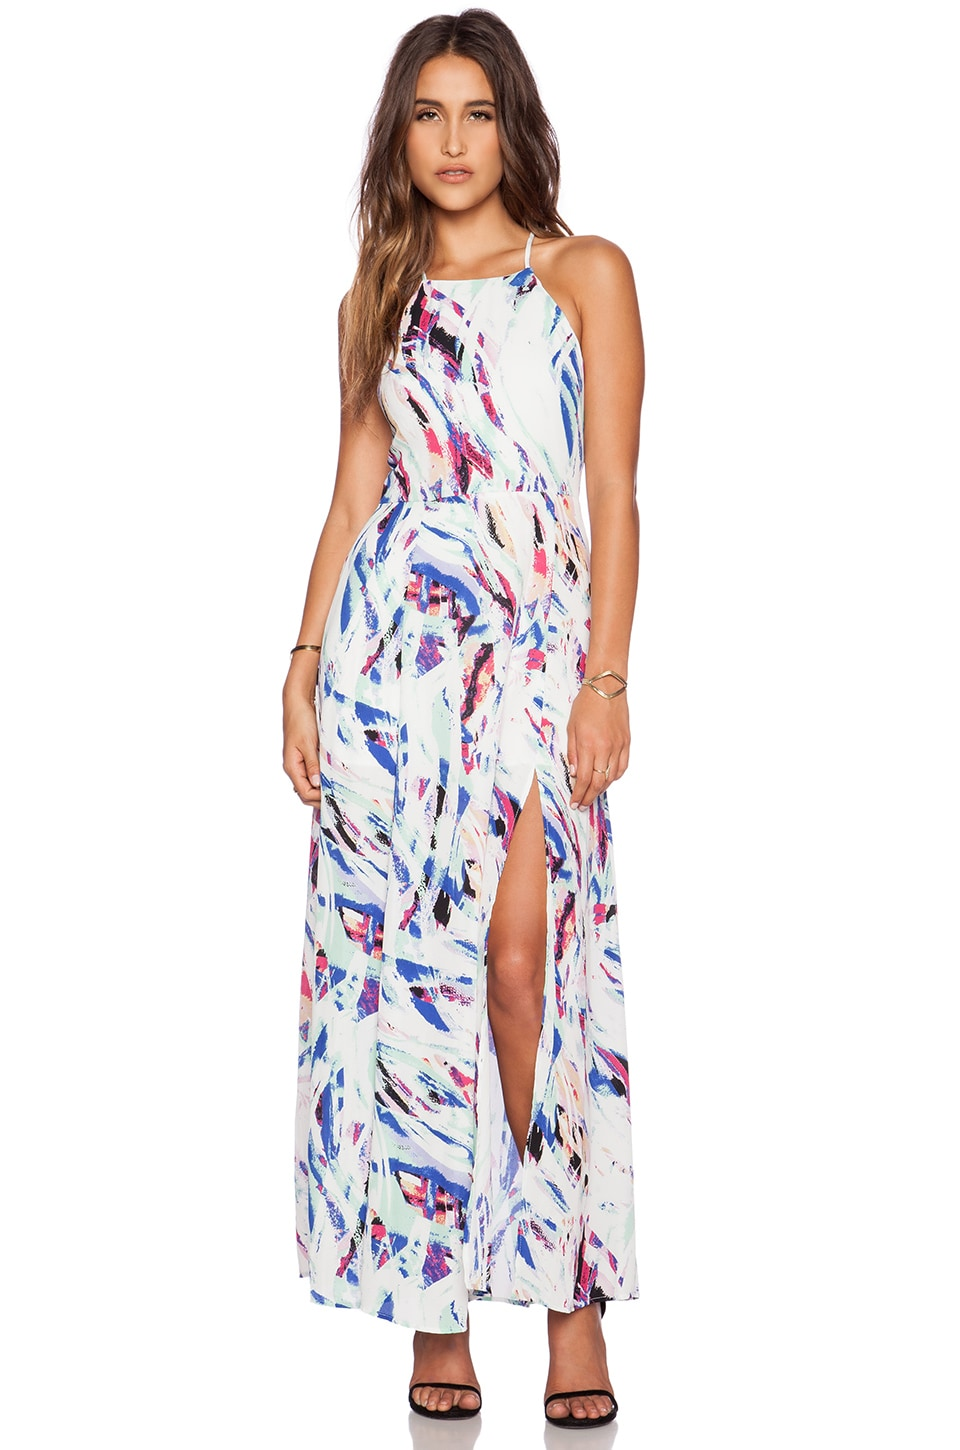 Eight Sixty Colors of the Wind Maxi Dress in White & Royal & Mint ...